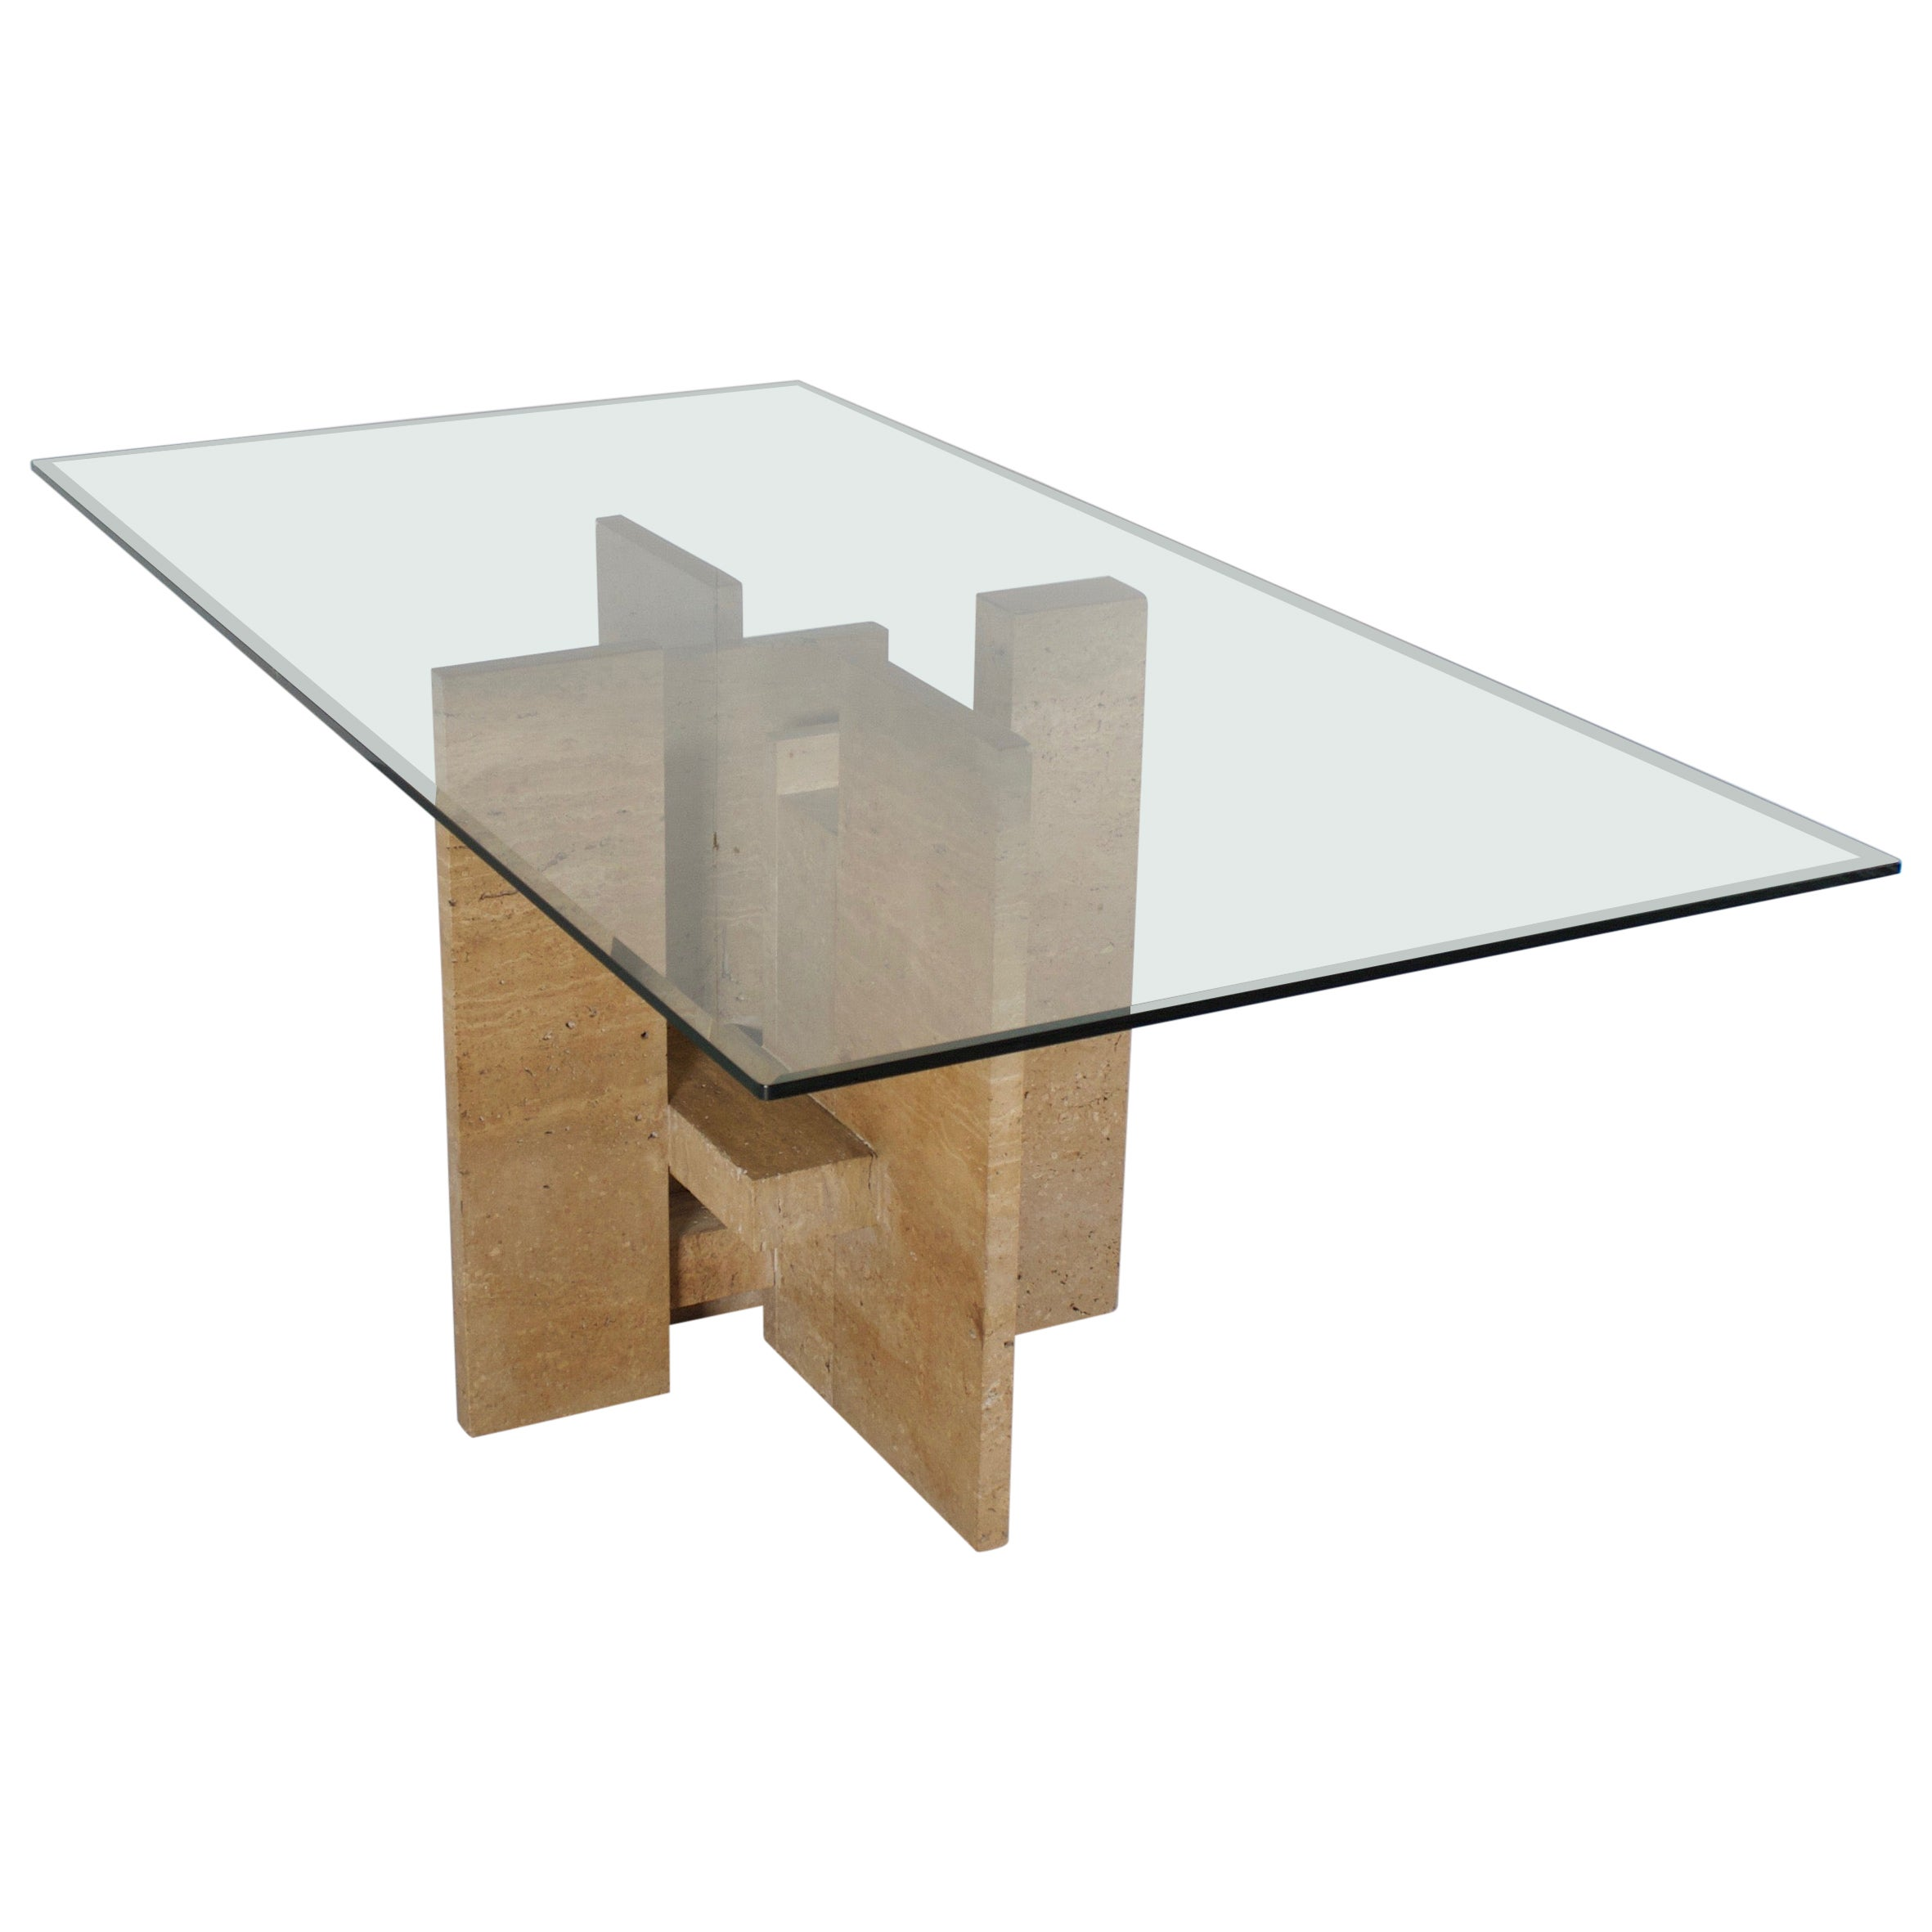 Sculptural Willy Ballez Dining Table in Travertine and Glass, Belgium 1970s